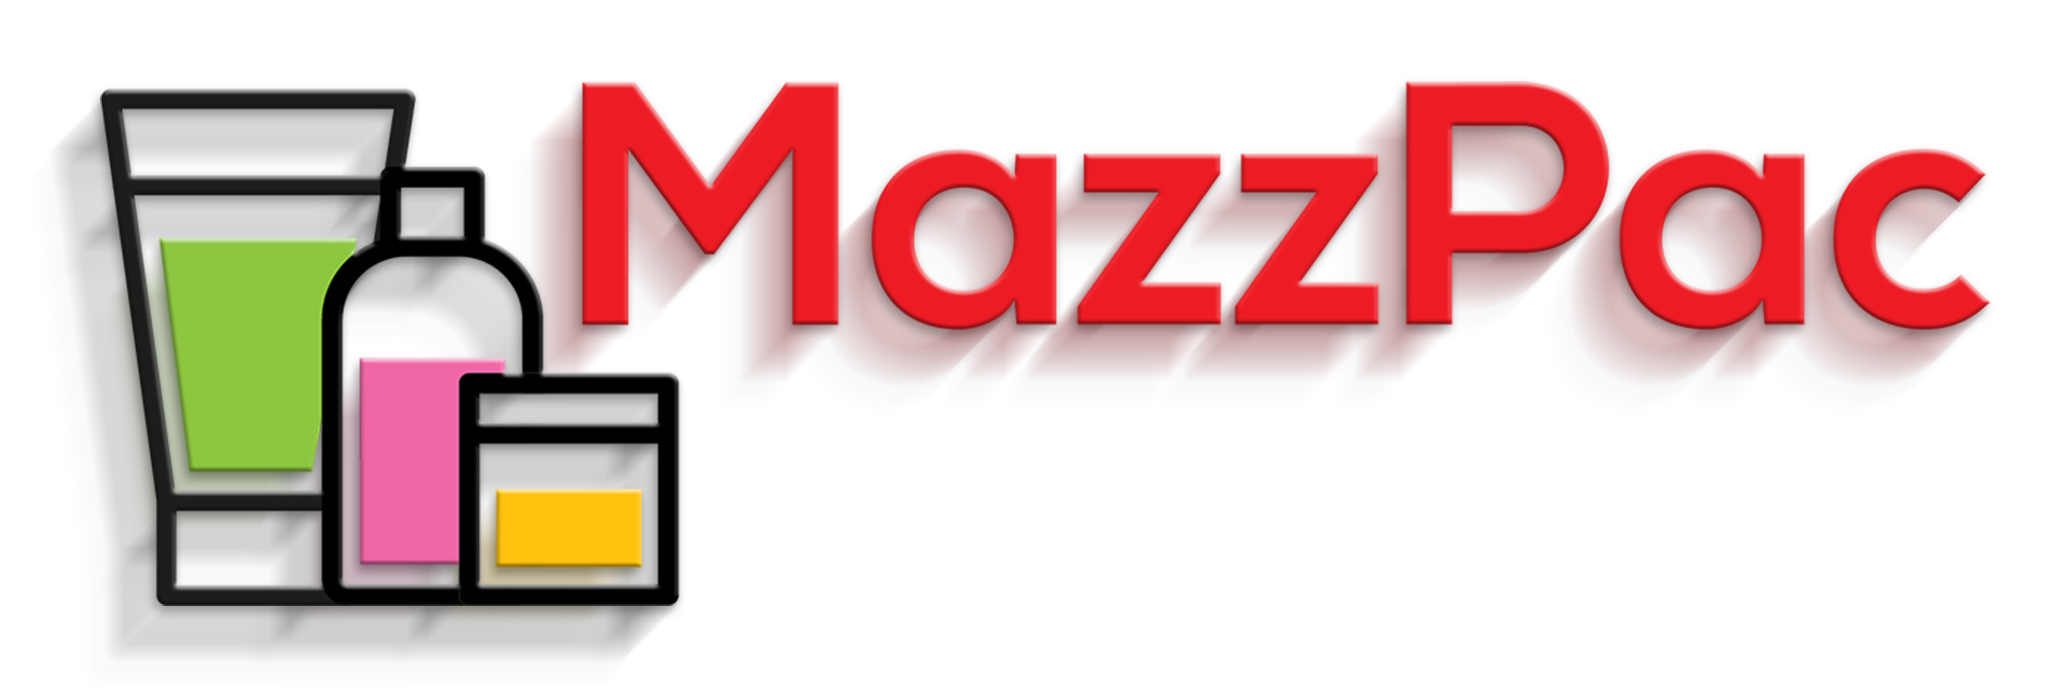 MazzPac LLC | Tube Fillers, Services & Packaging | USA & North America